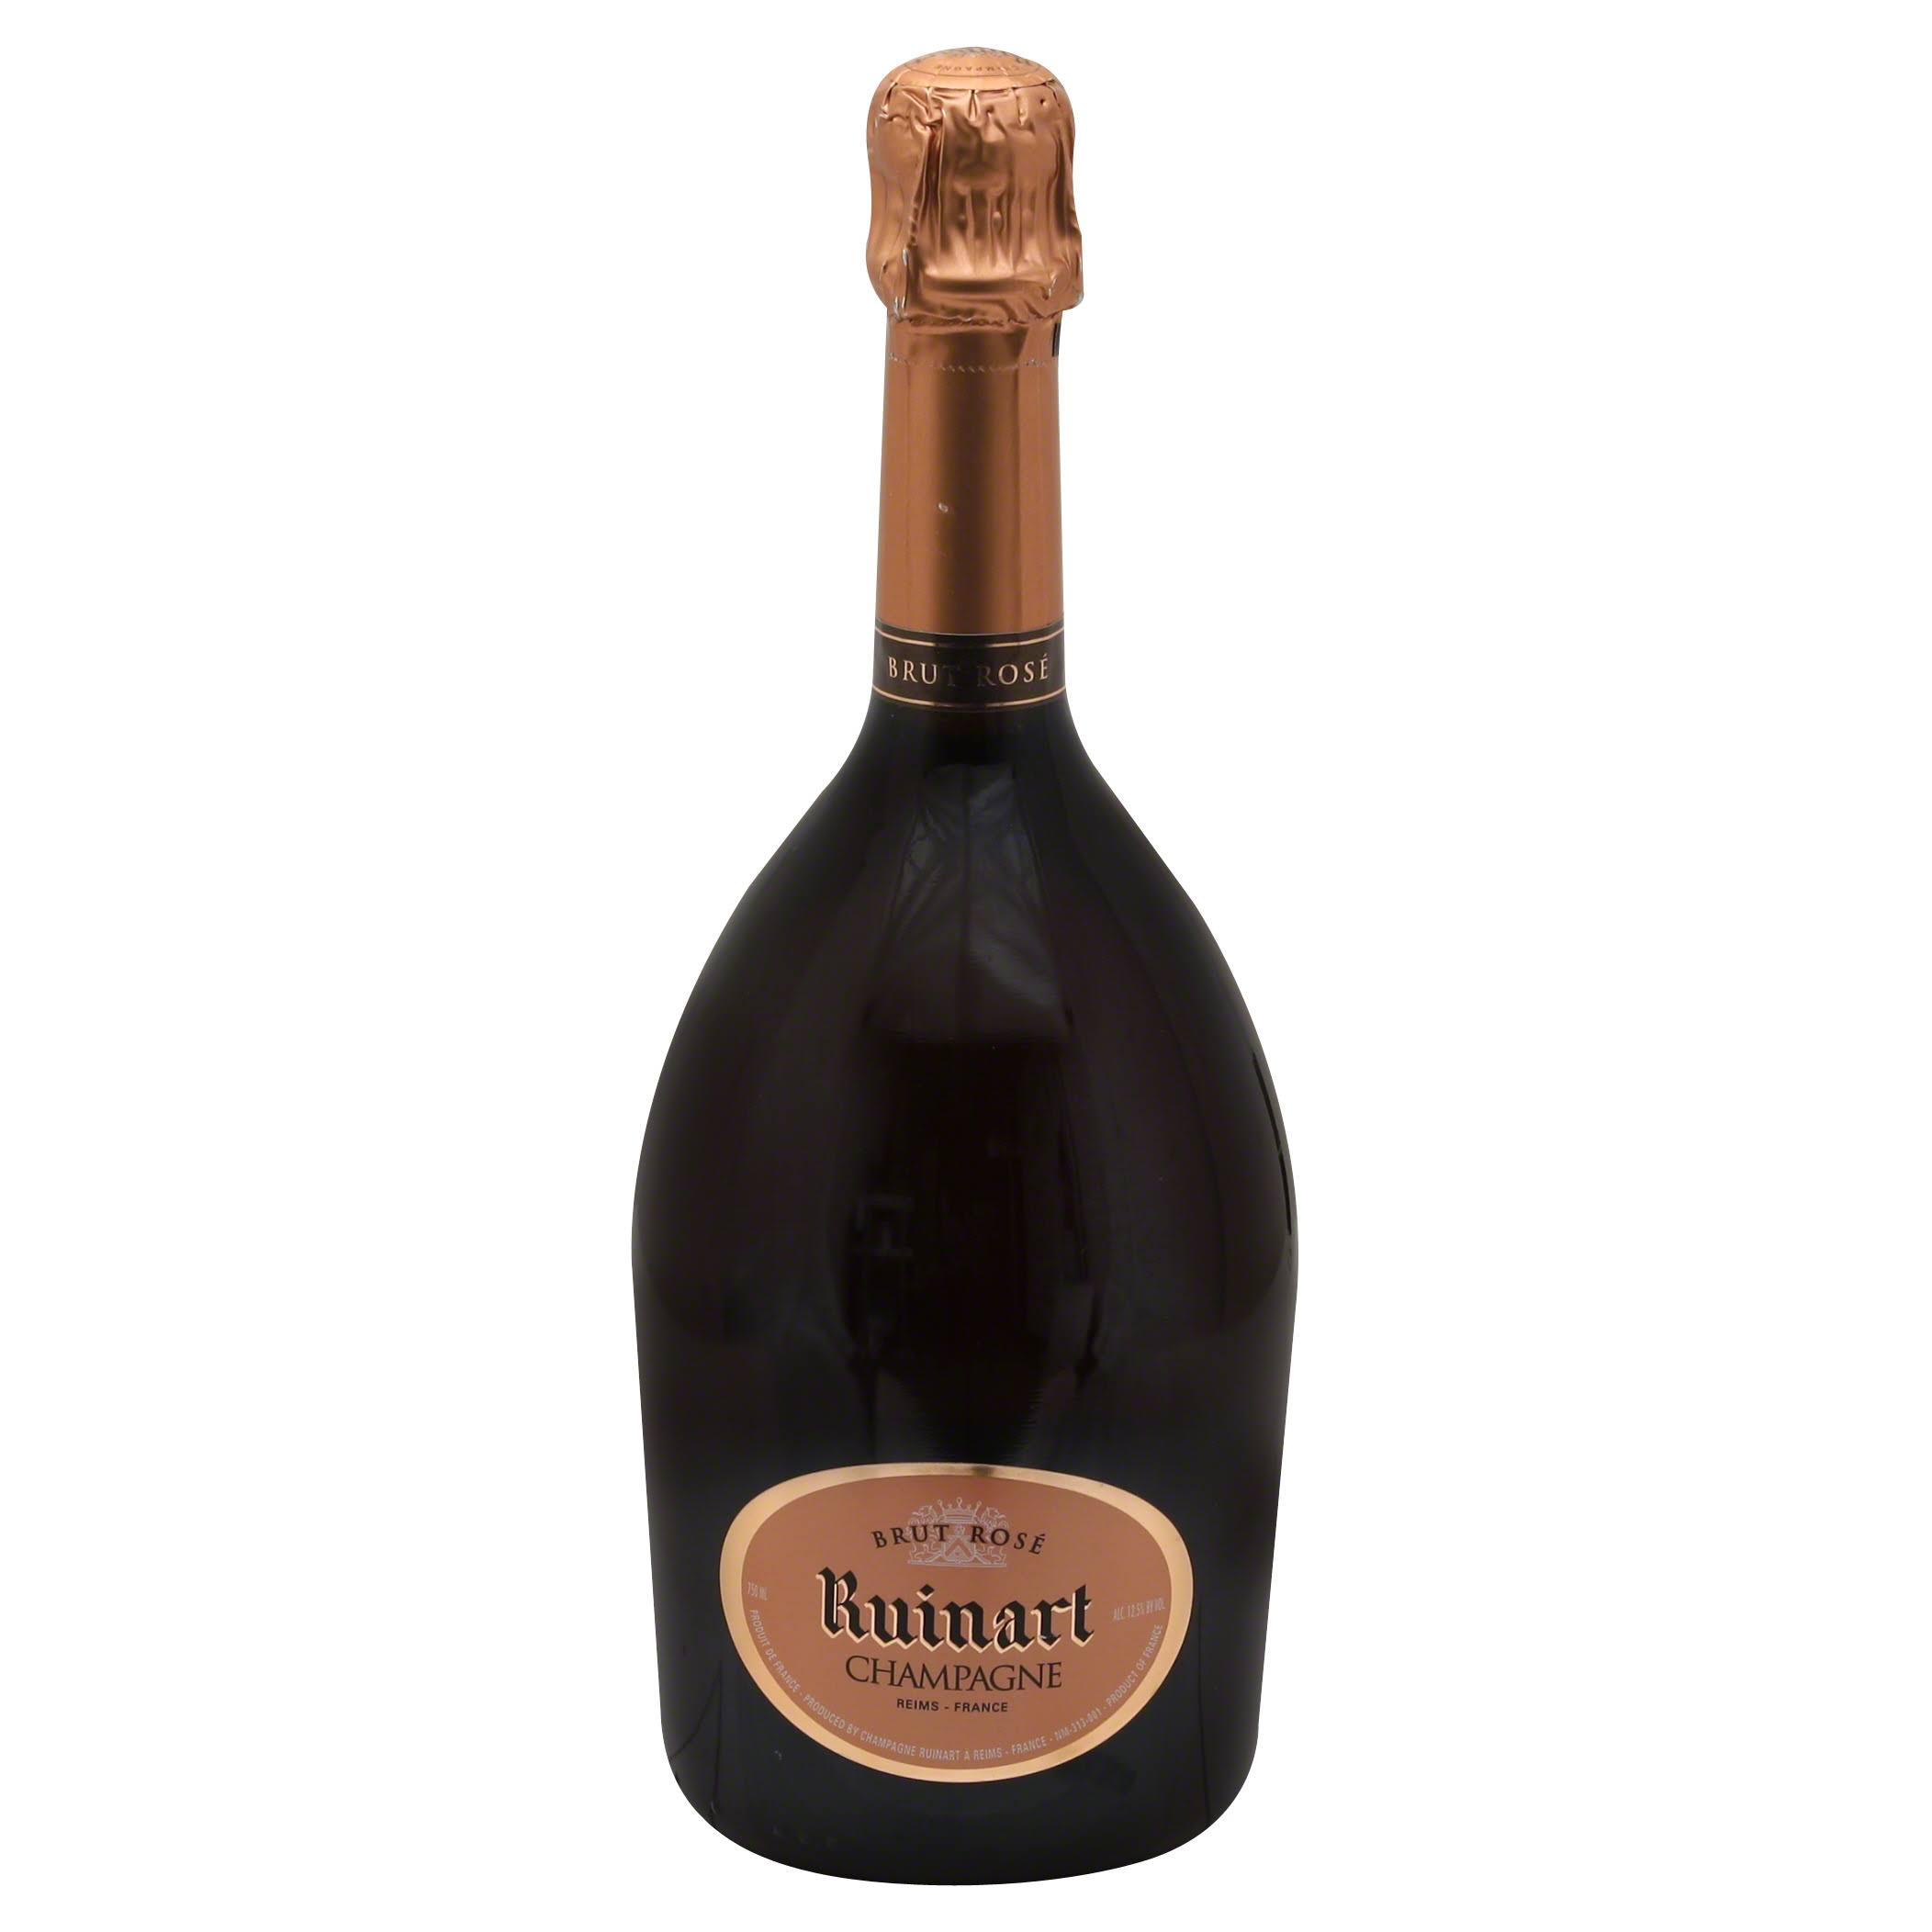 Ruinart Champagne, Brut Rose, Reims France - 750 ml